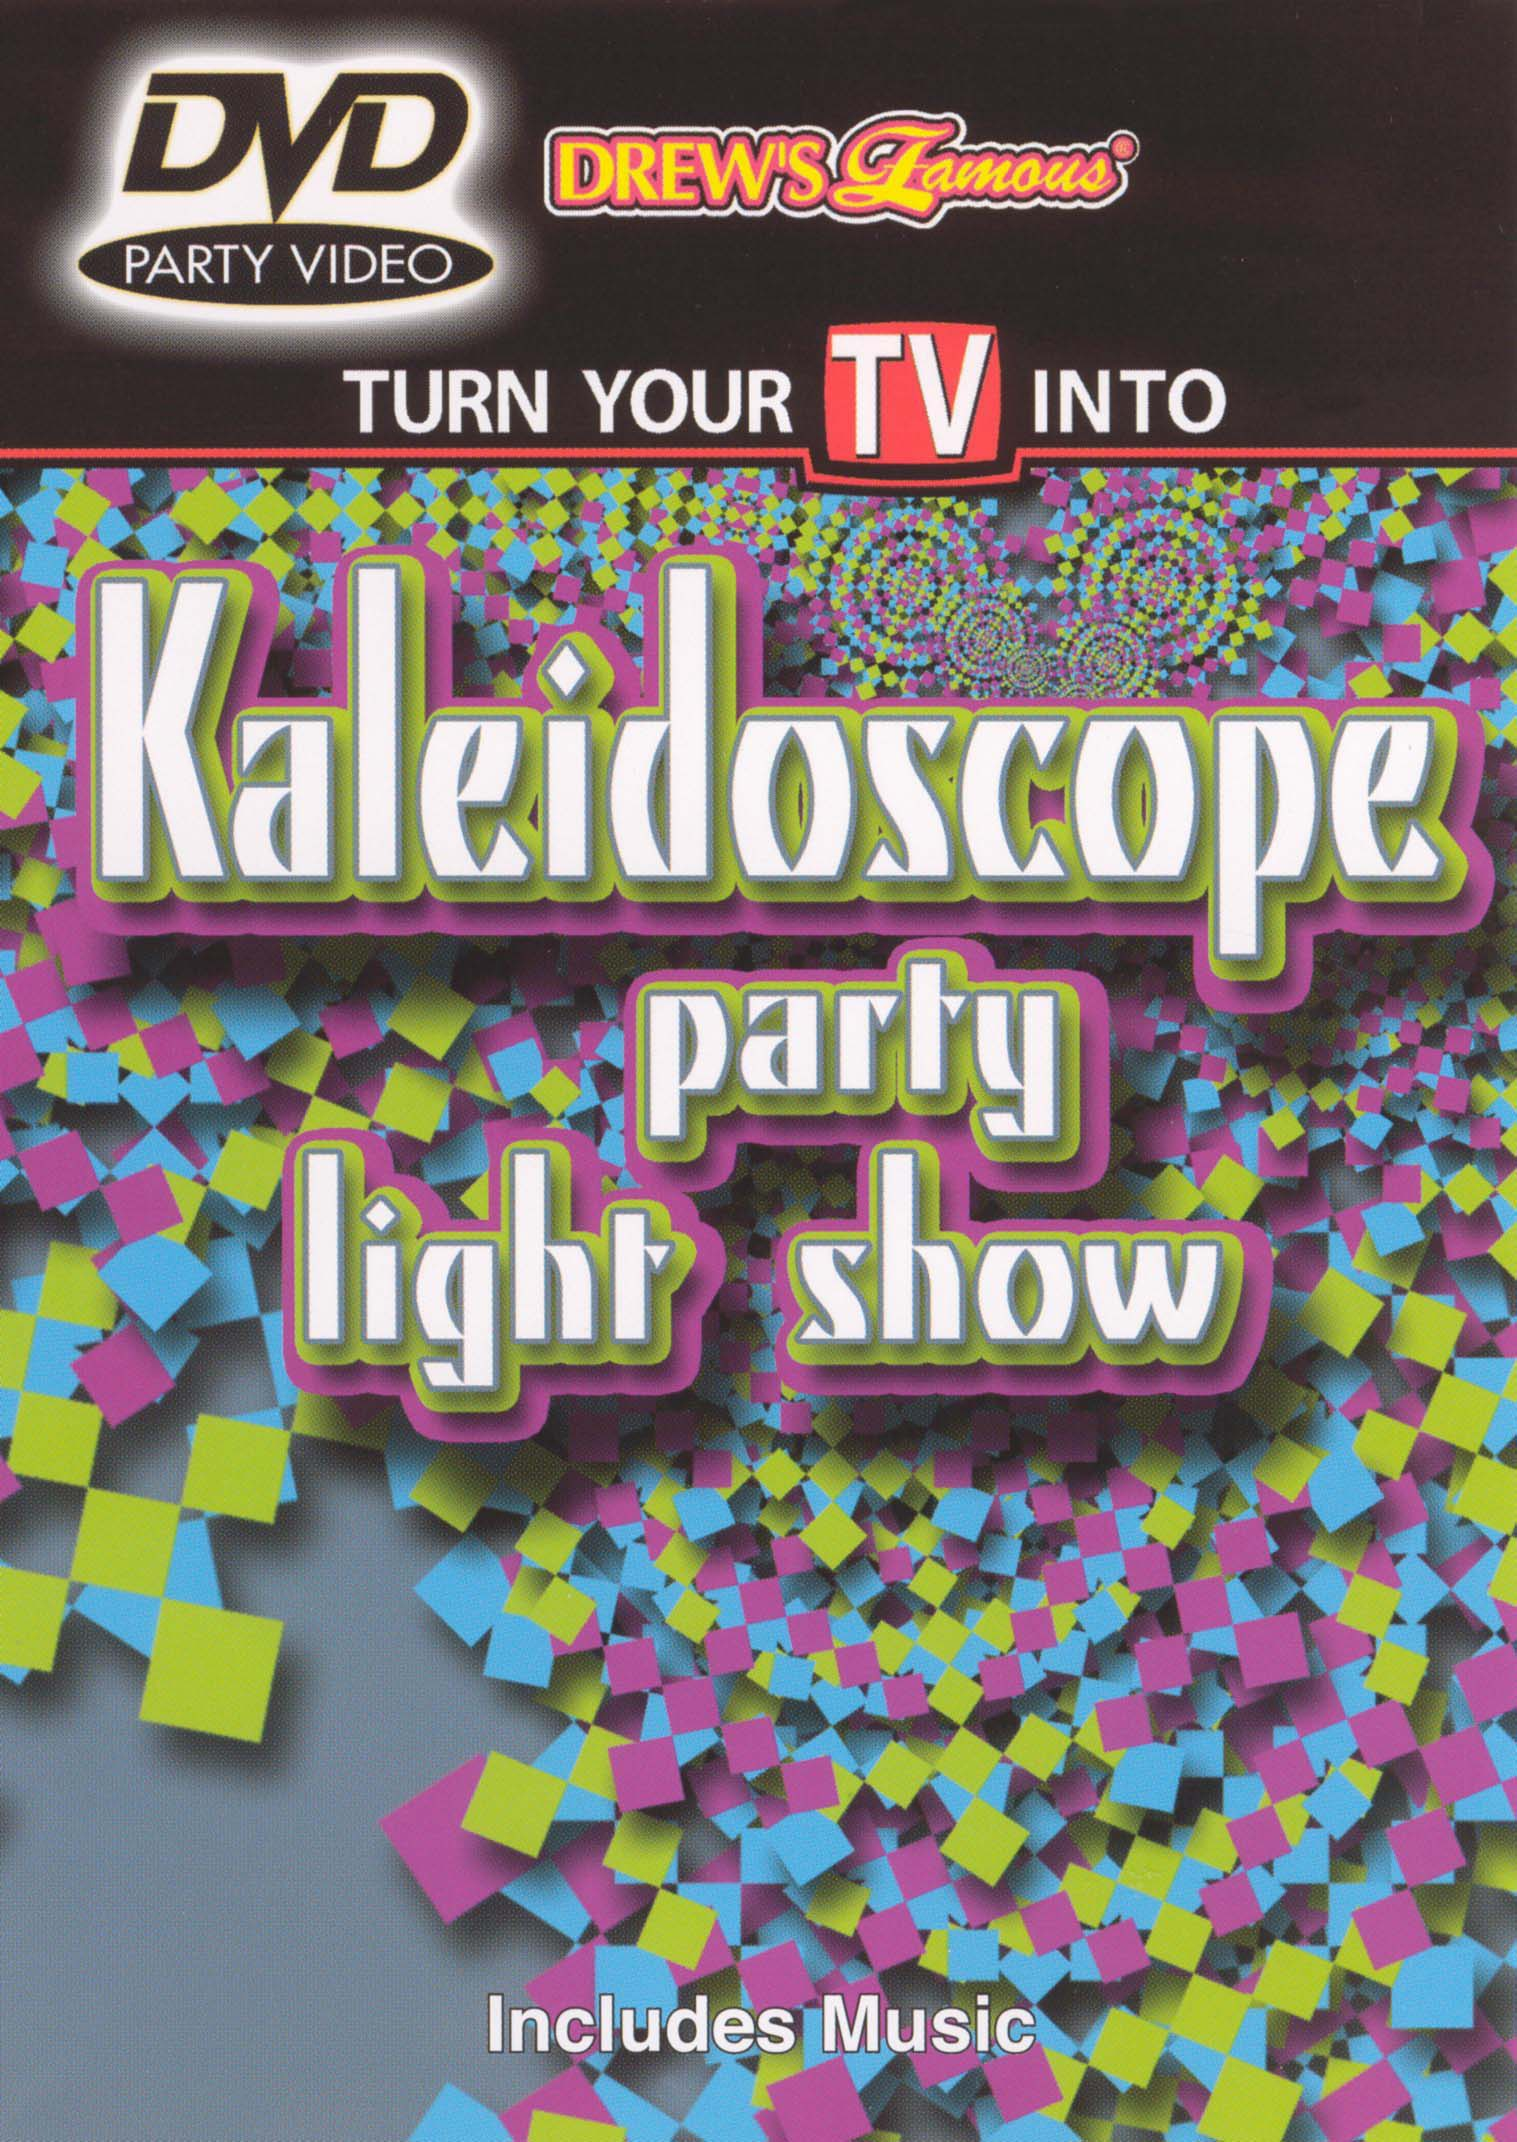 Kaleidoscope Party Light Show